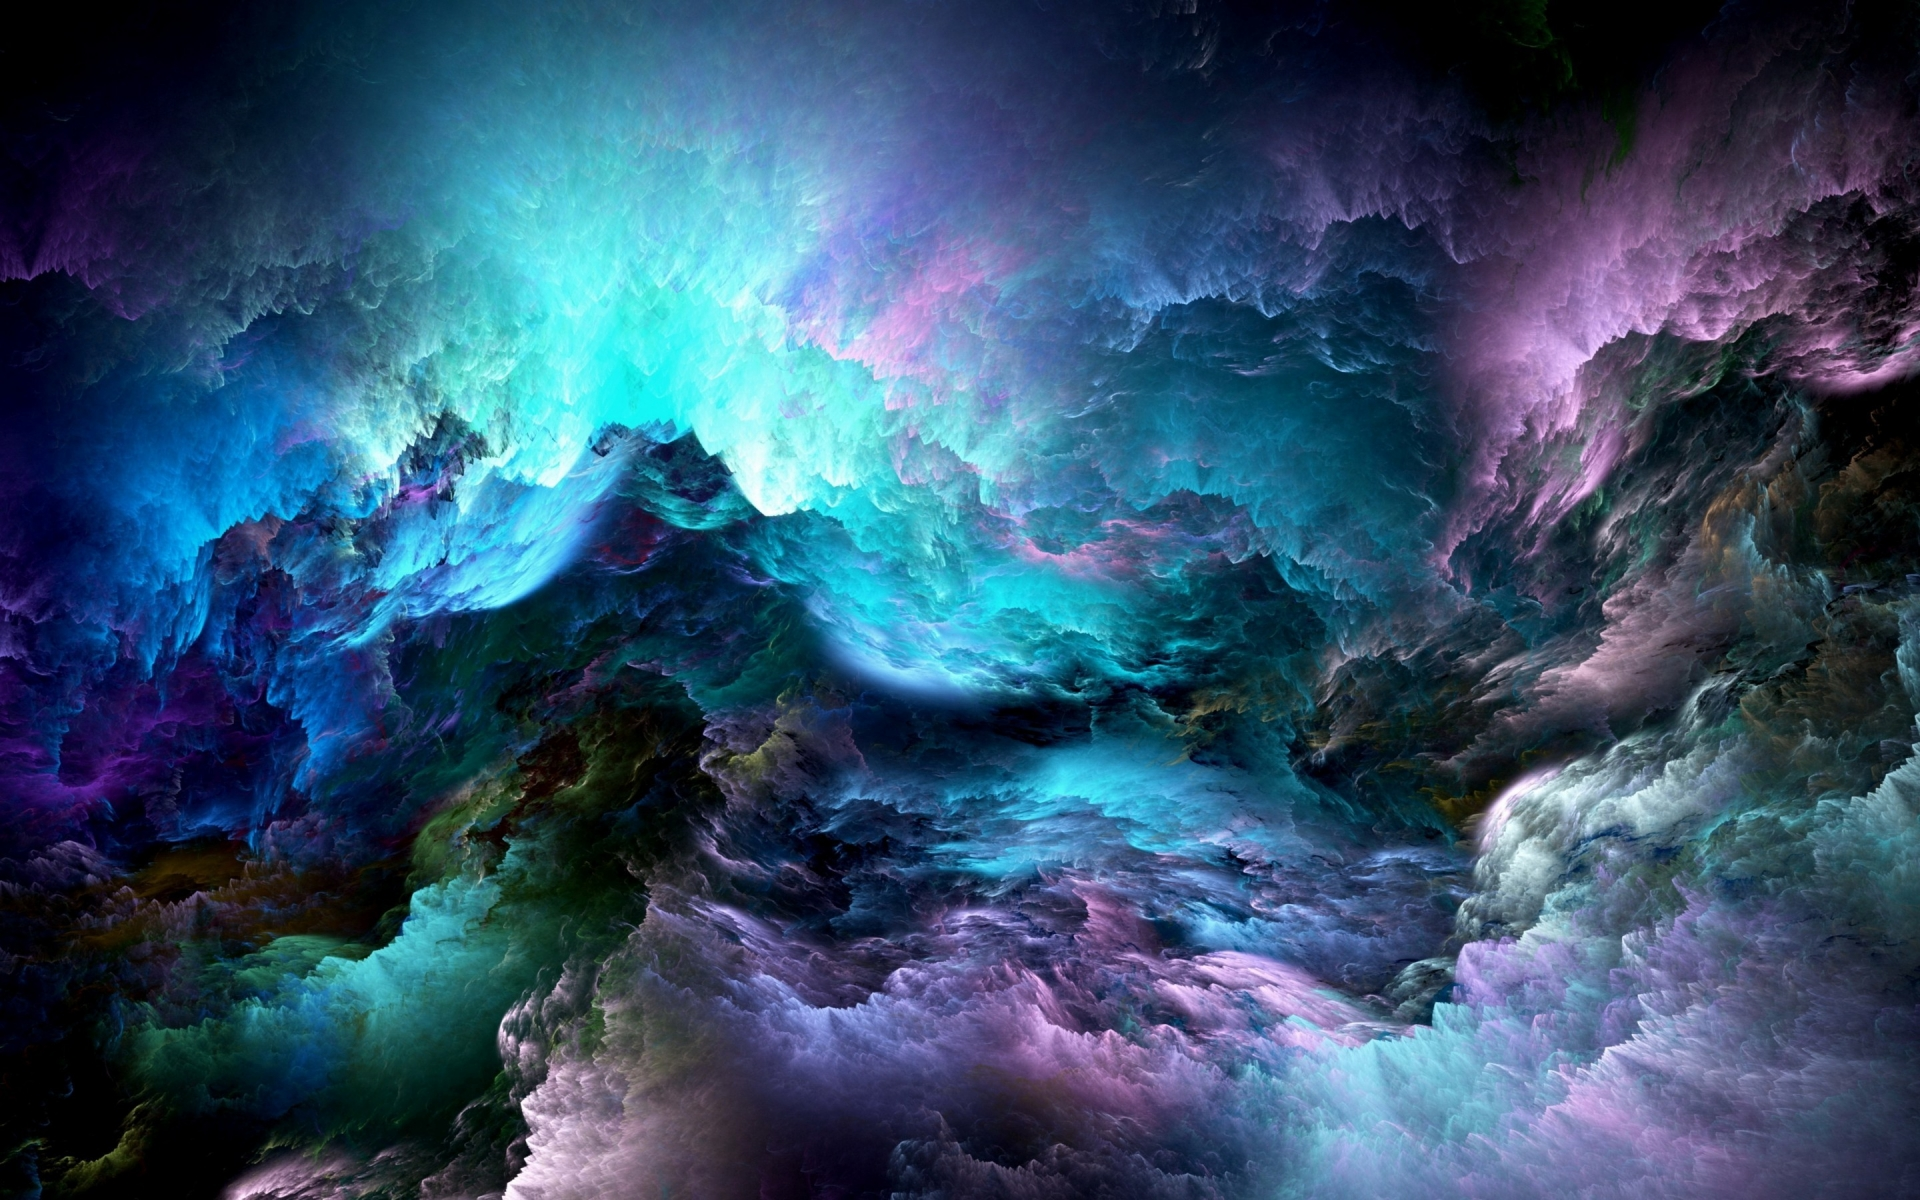 Abstract Colorful Clouds for 1920 x 1200 widescreen resolution